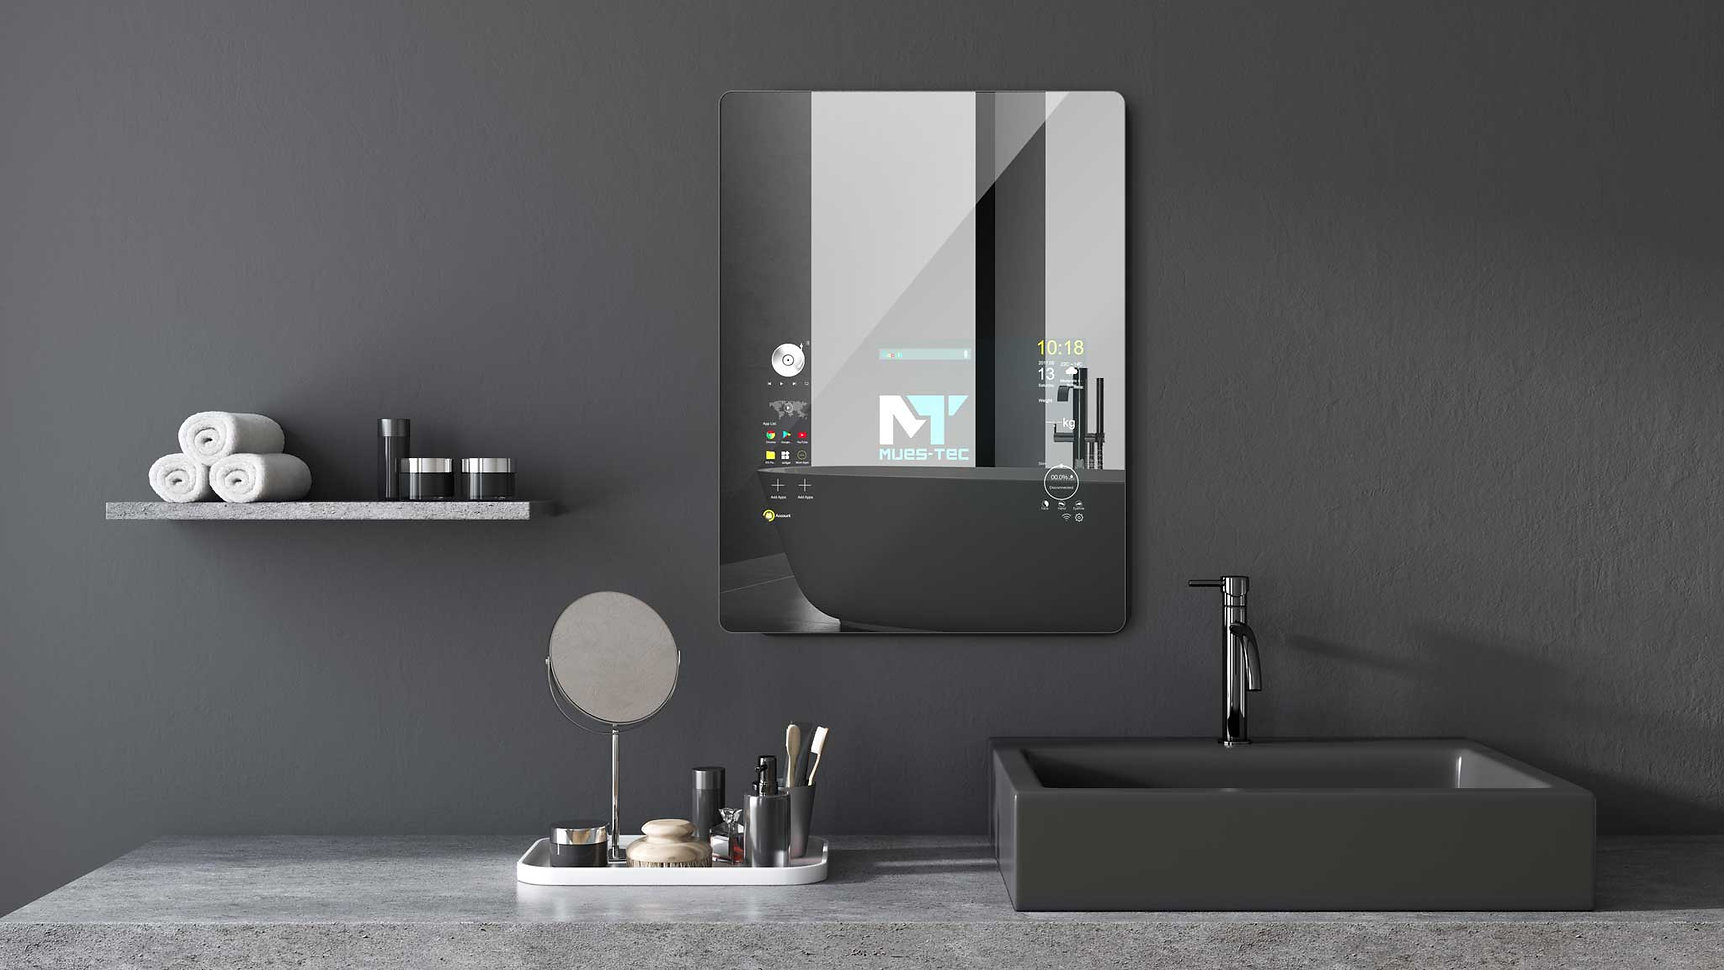 Start your morning with the Mues-Tec Smart Mirror - whether you prefer Music, News or the latest Styling App - this Smart Mirror can do it all!